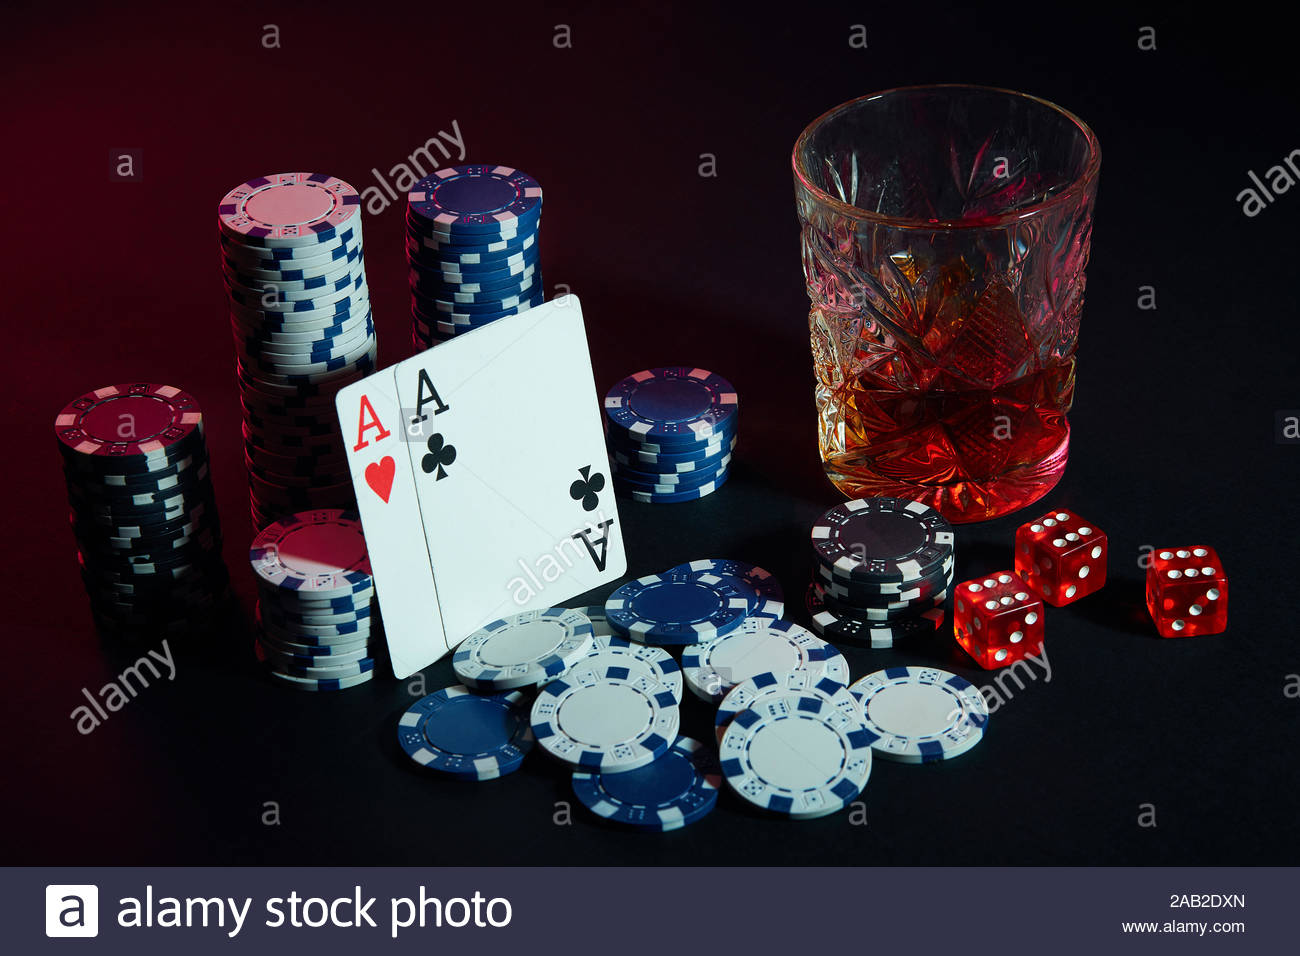 Never Changing Casino Will Eventually Destroy You